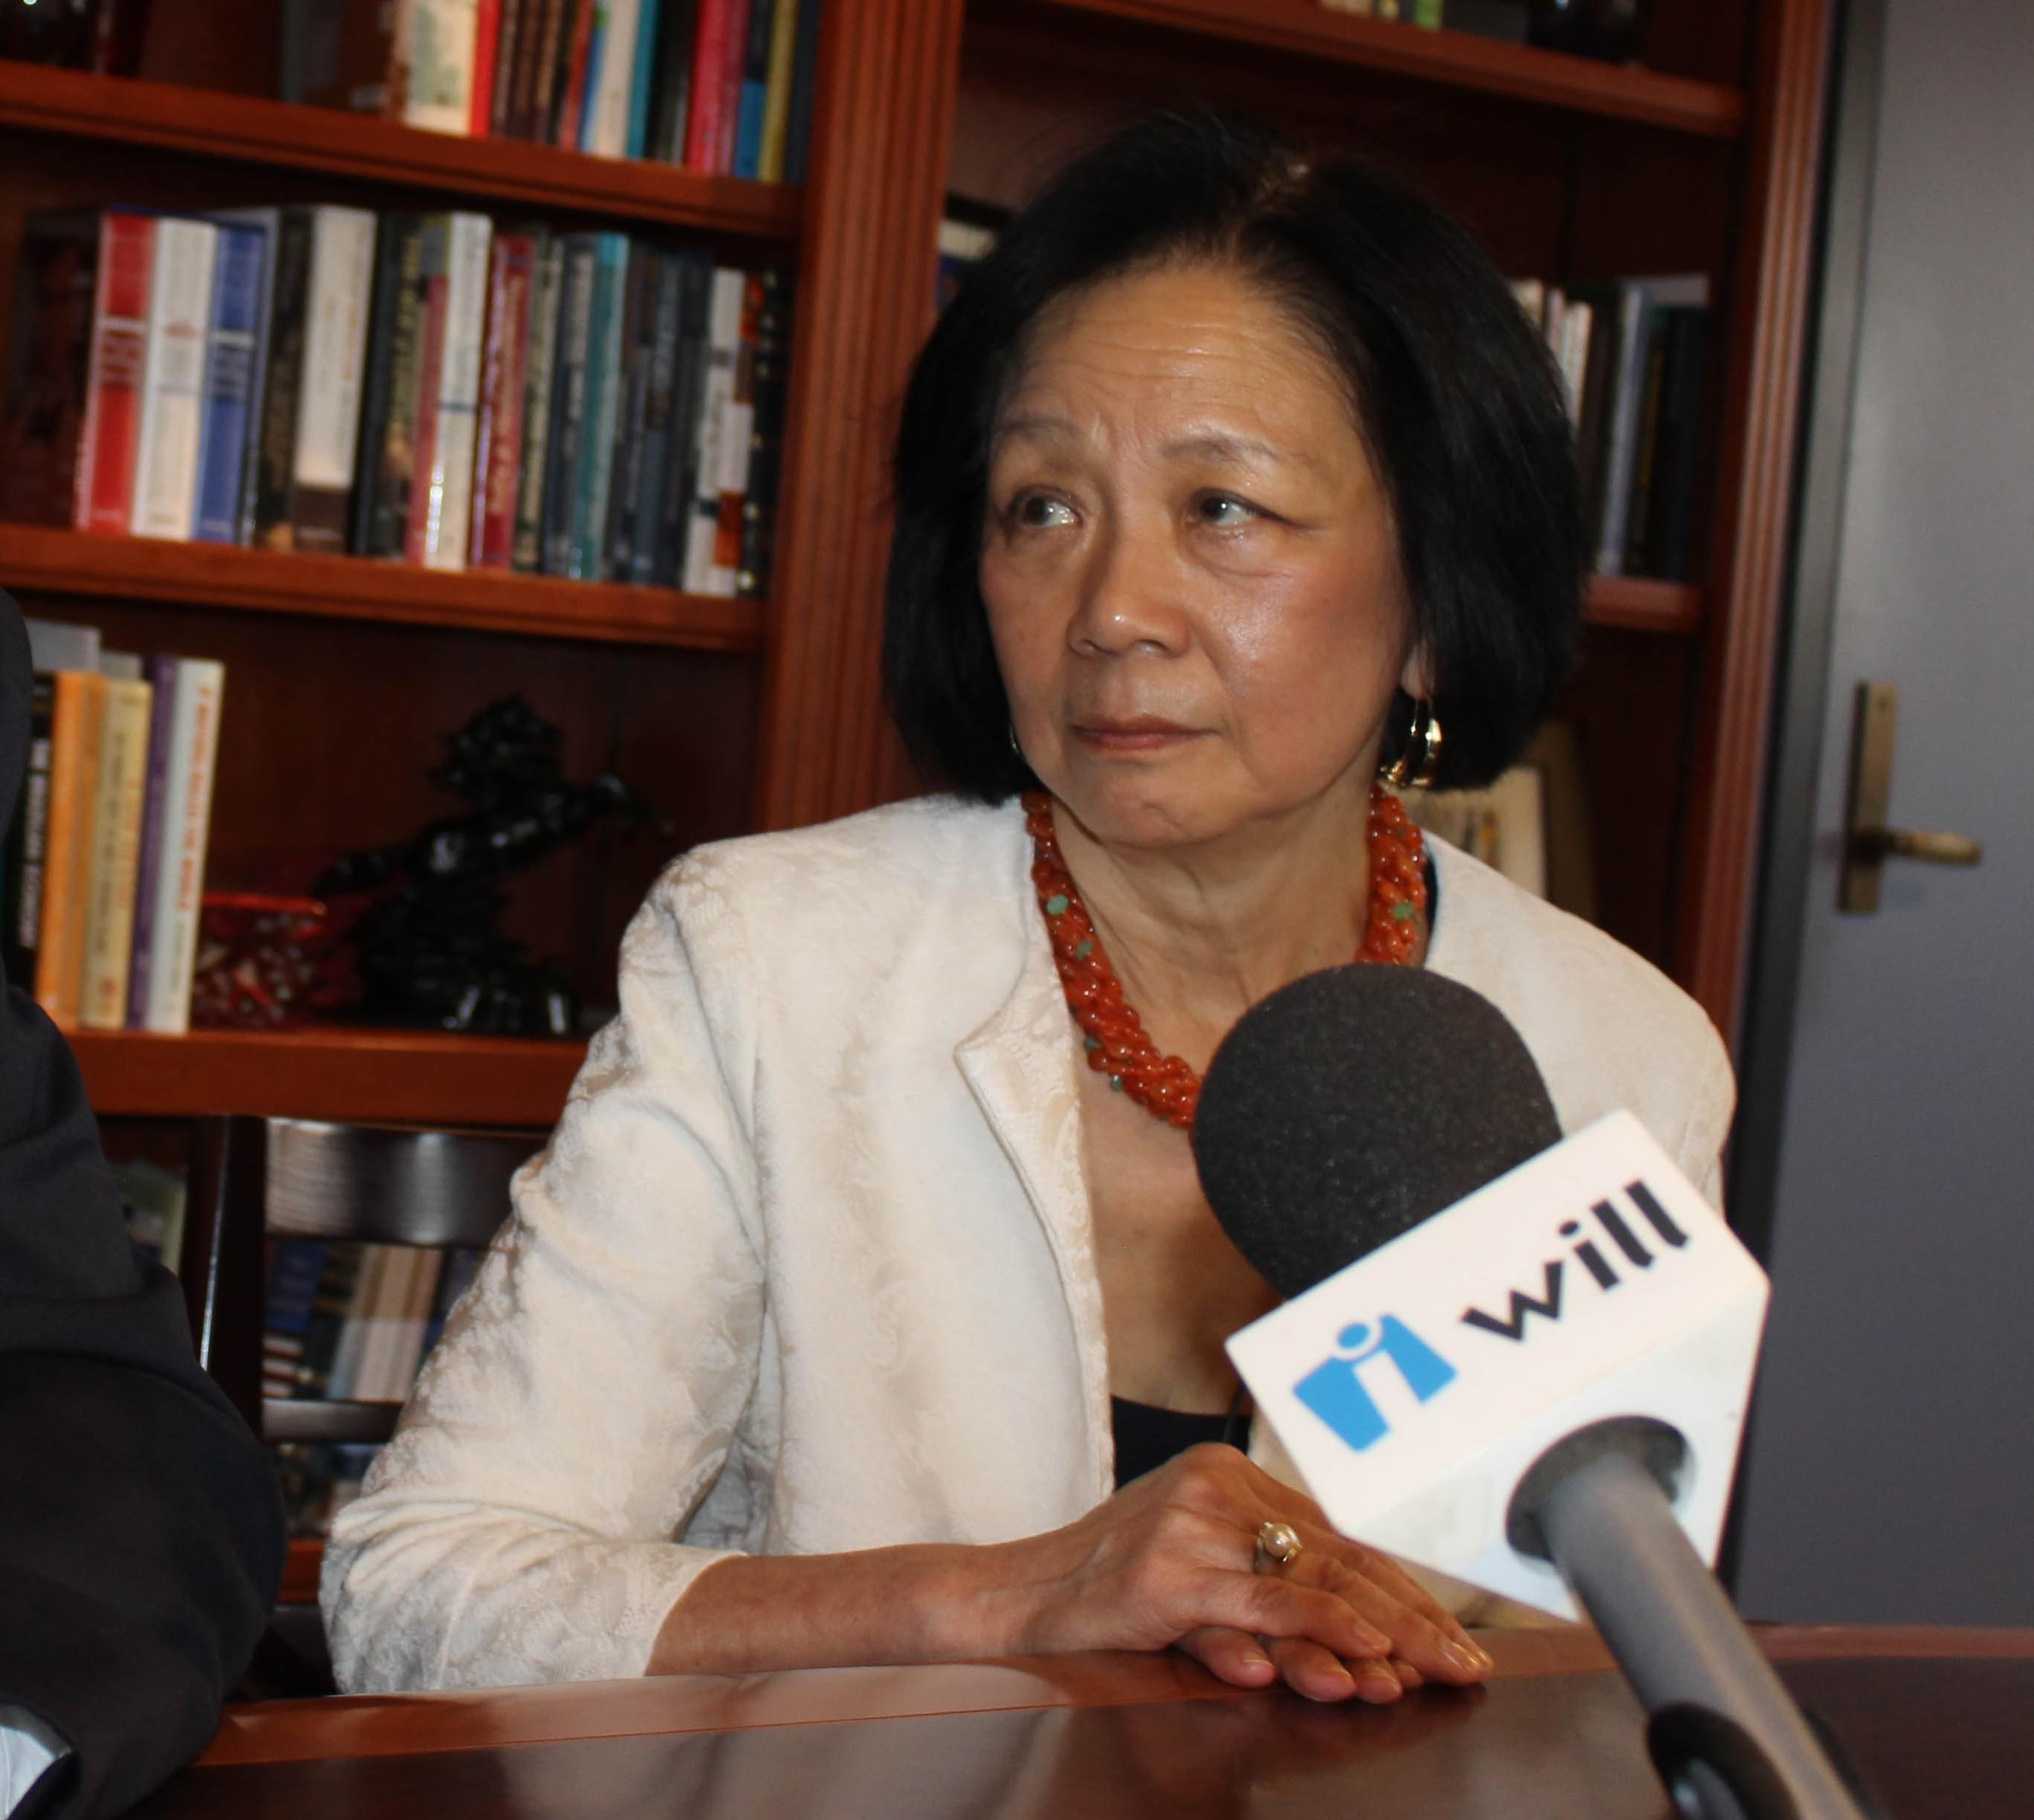 Former U of I Urbana Chancellor Phyllis Wise, in an interview on campus.